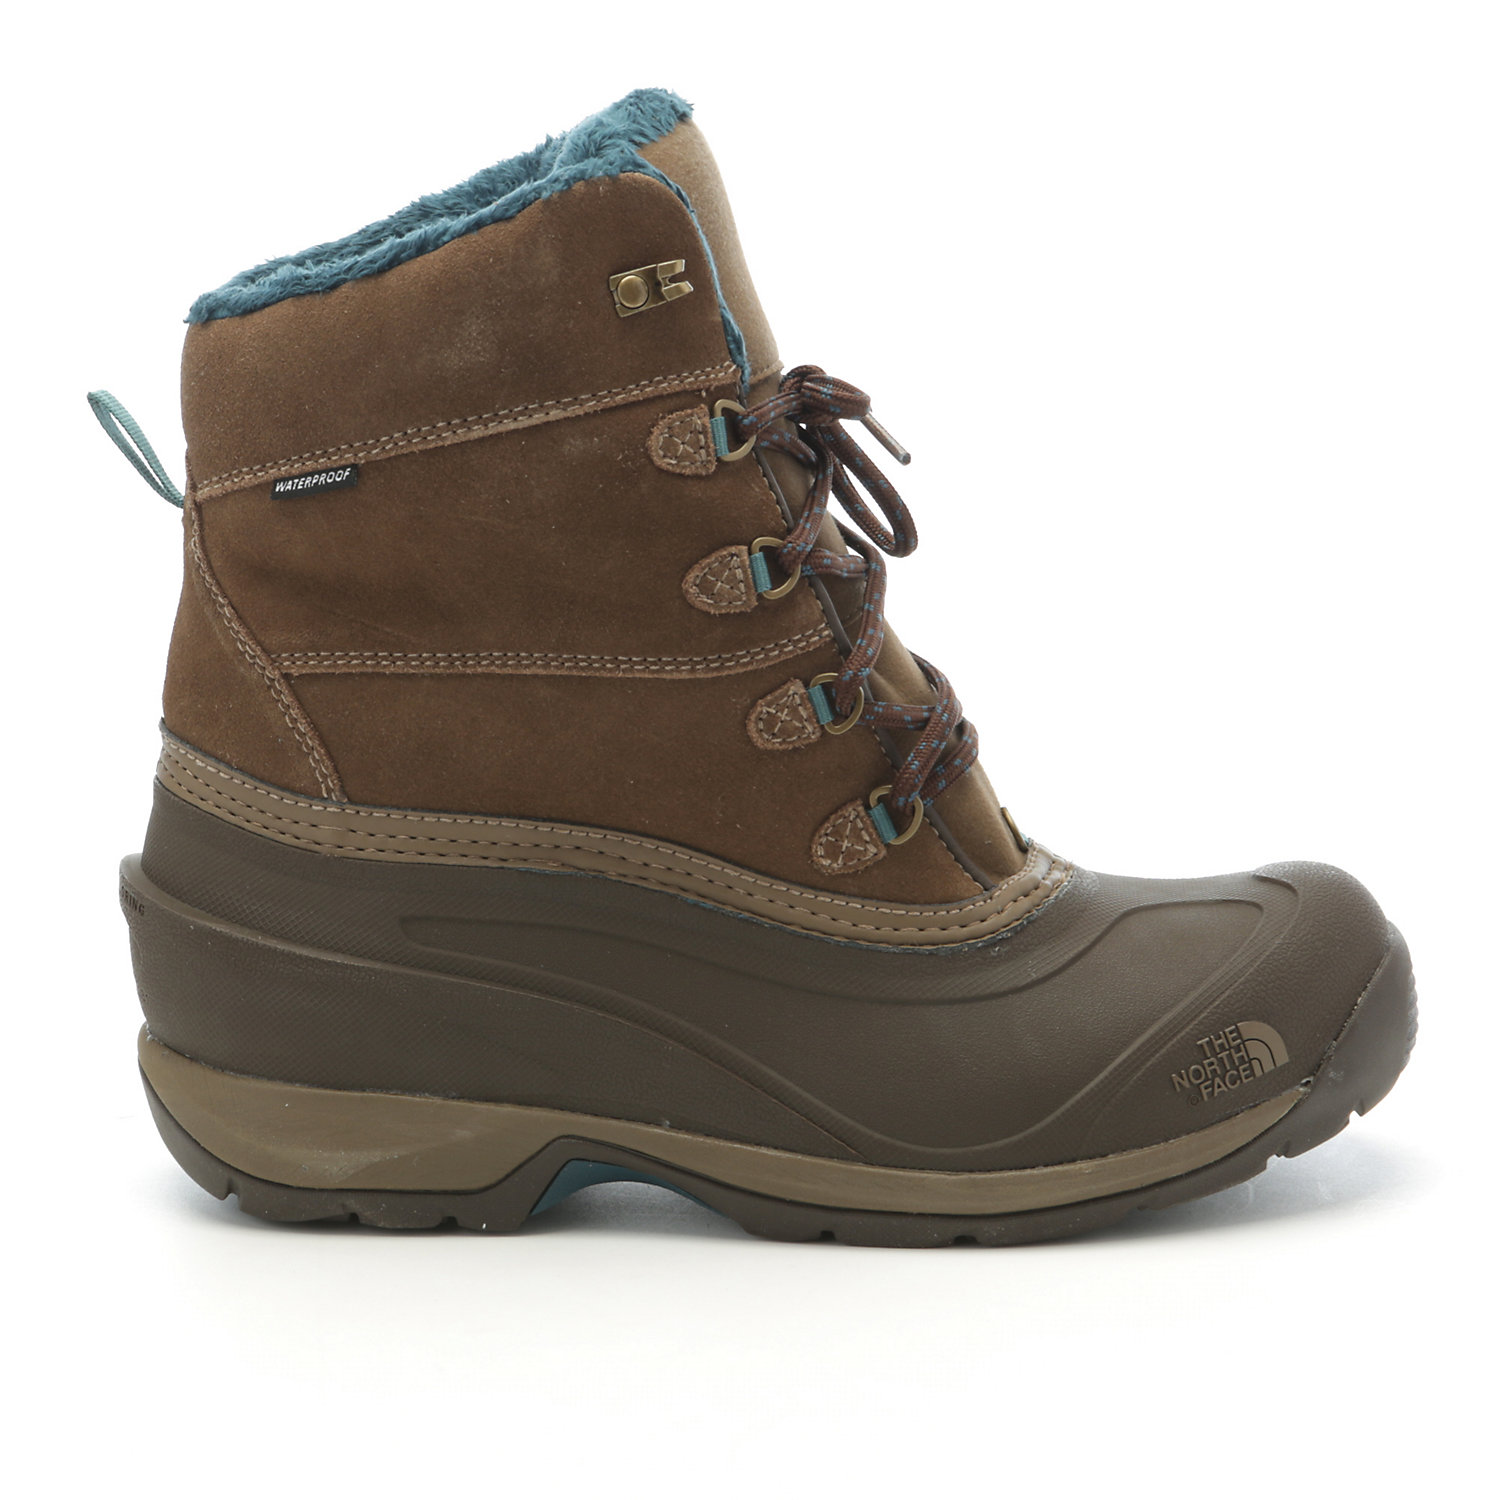 16ccf7bdc4a The North Face Women's Chilkat III Boot